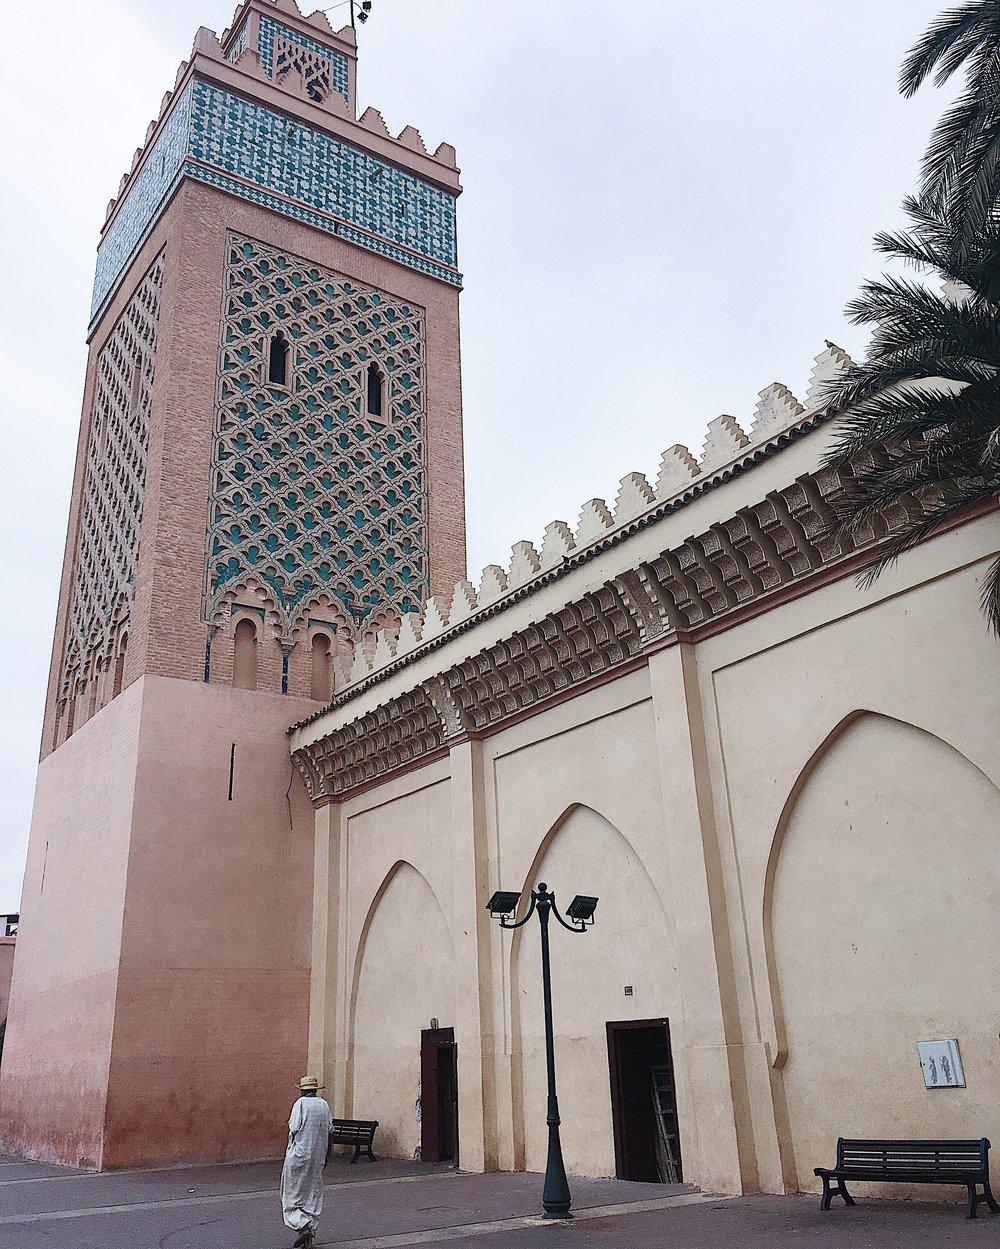 Karlabeetravels_Marrakech_Mosque.JPG